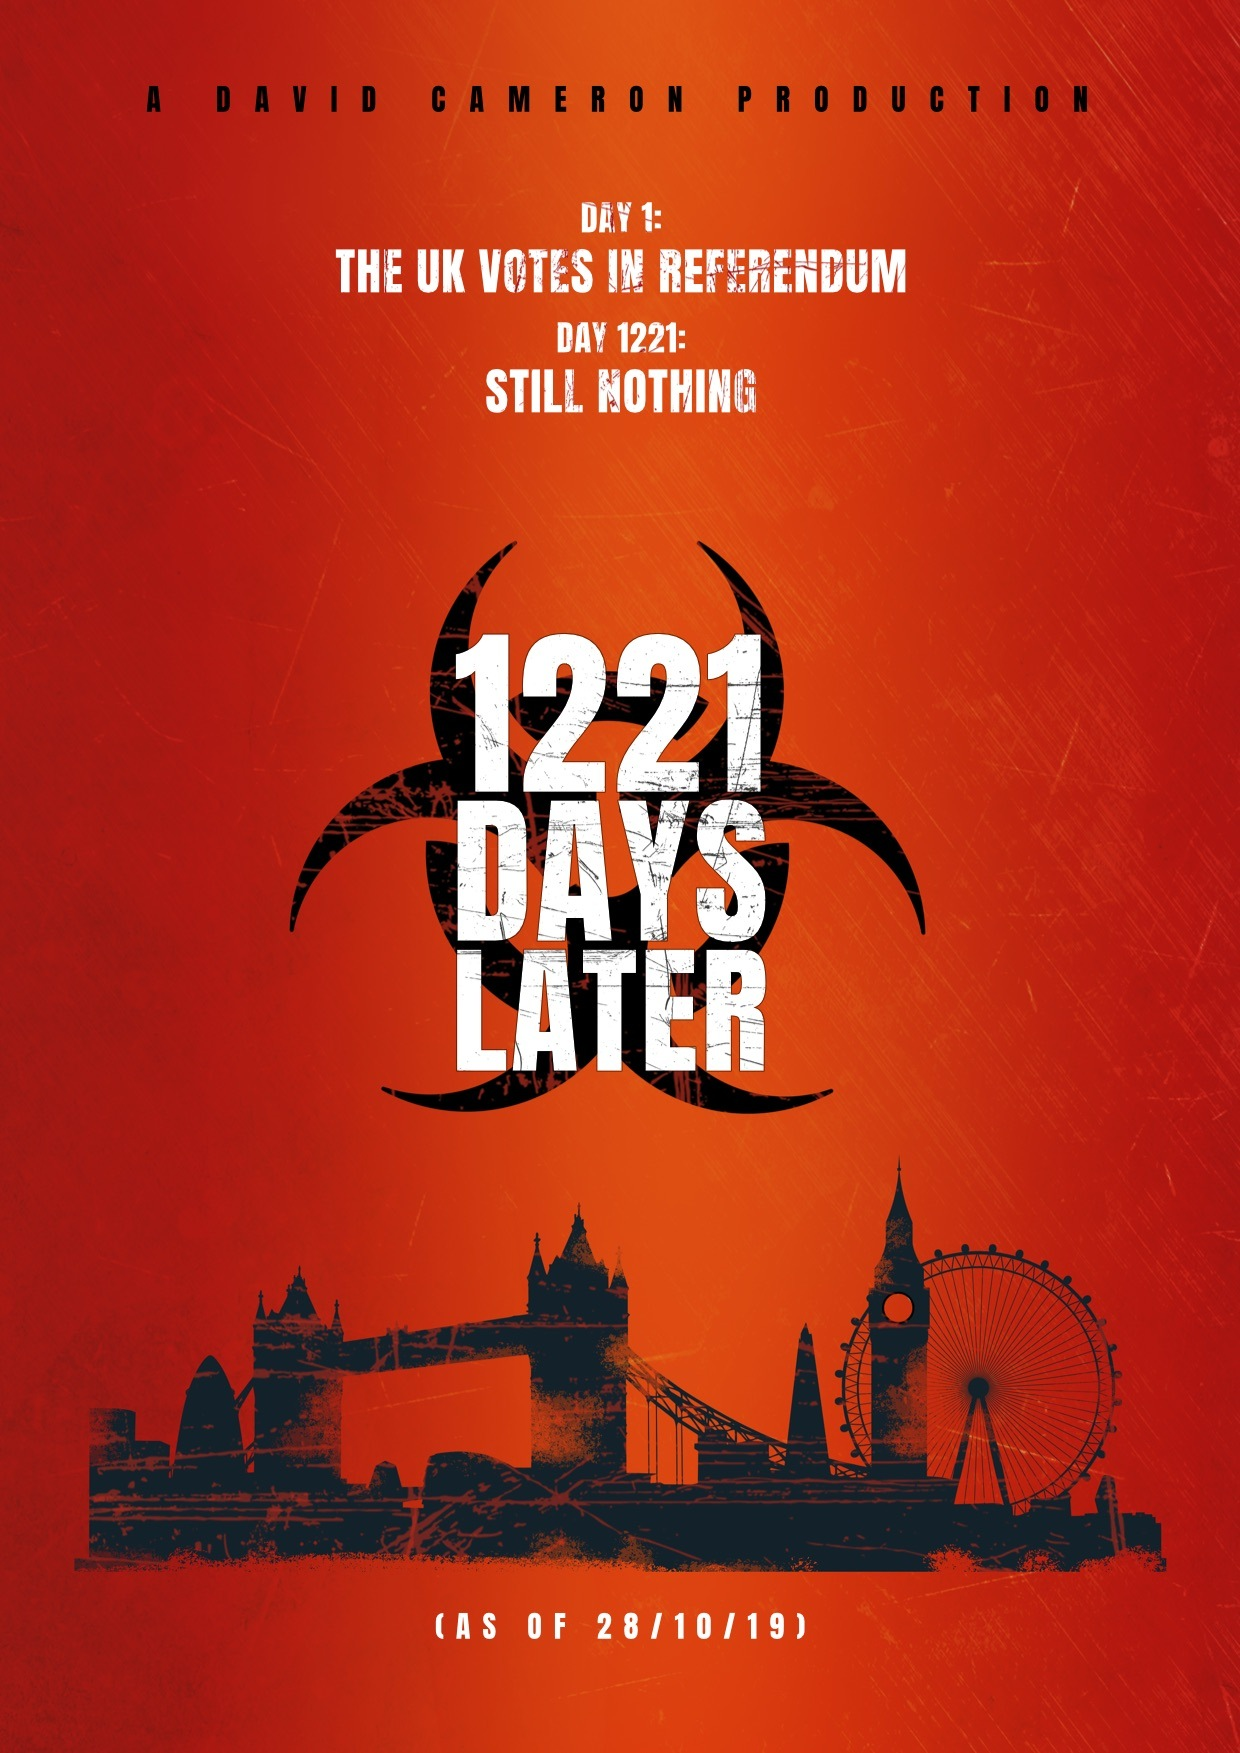 28 days later movie poster, brexit